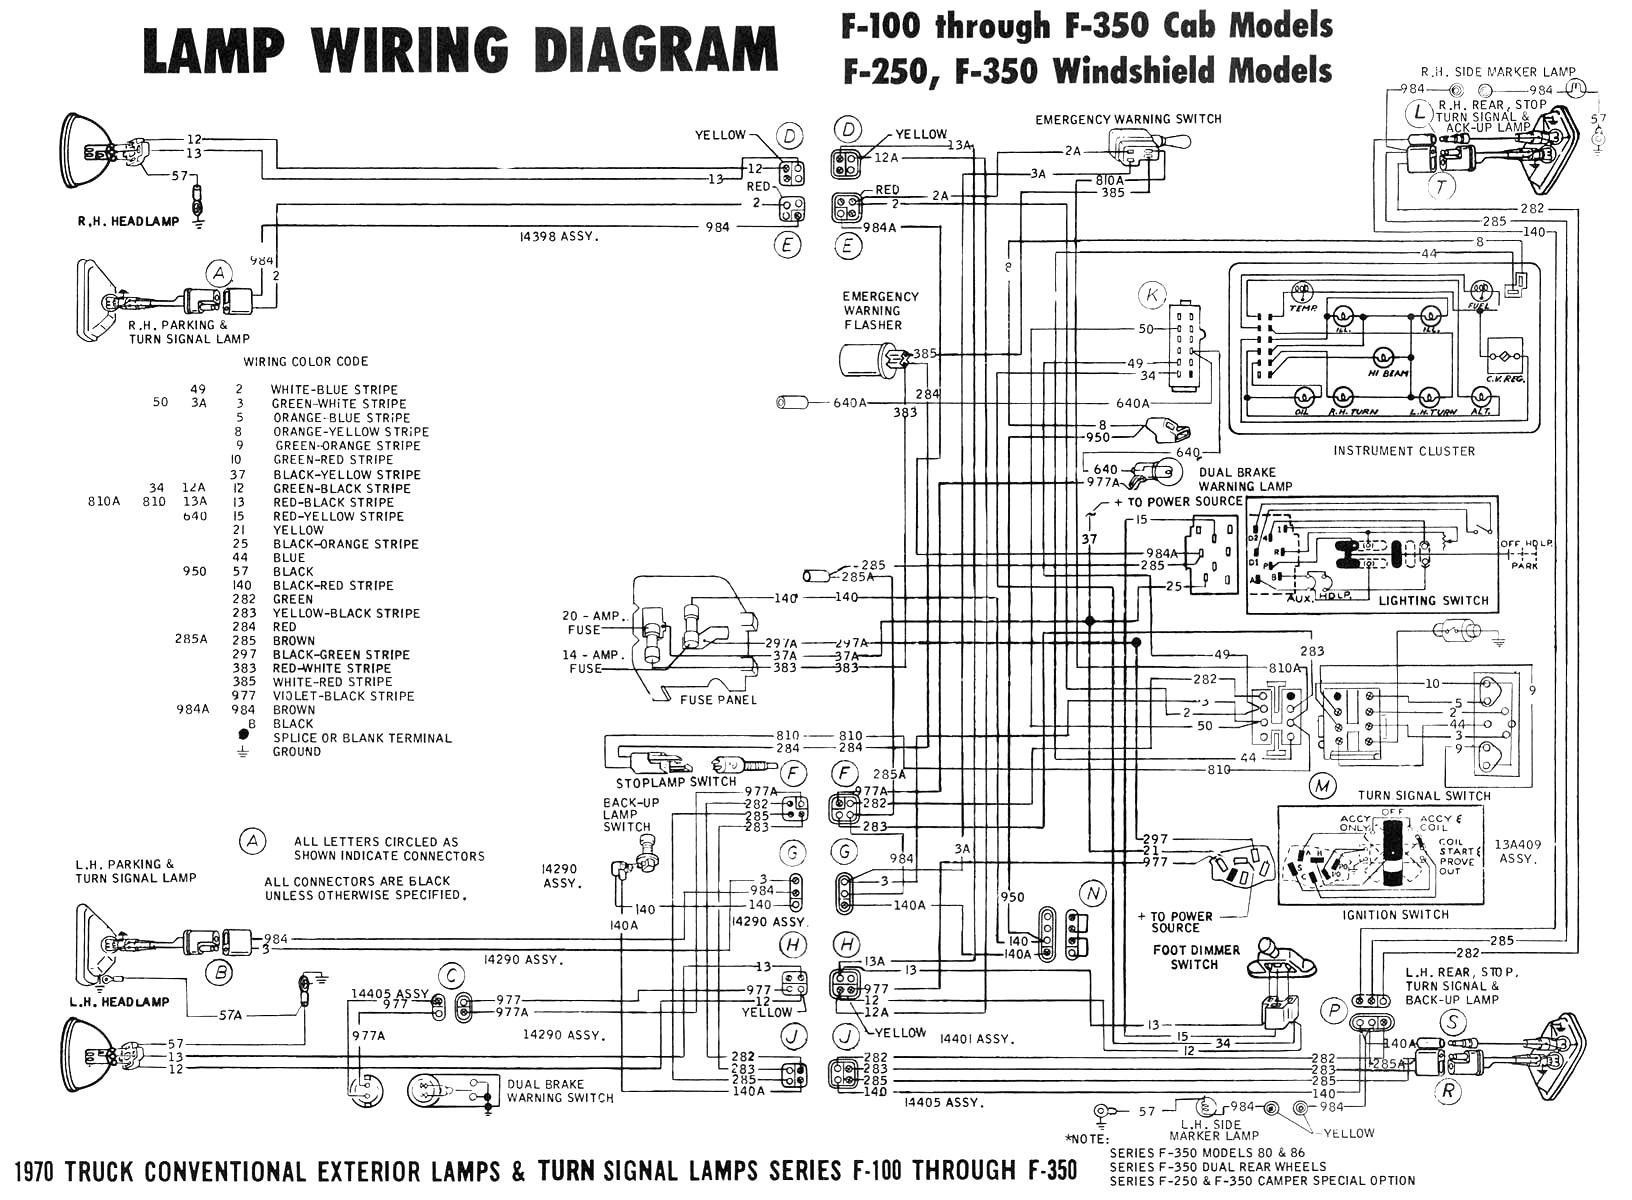 99 Honda Civic Stereo Wiring Diagram 1999 Honda Accord Wiper Wiring Diagram Wiring Diagram View